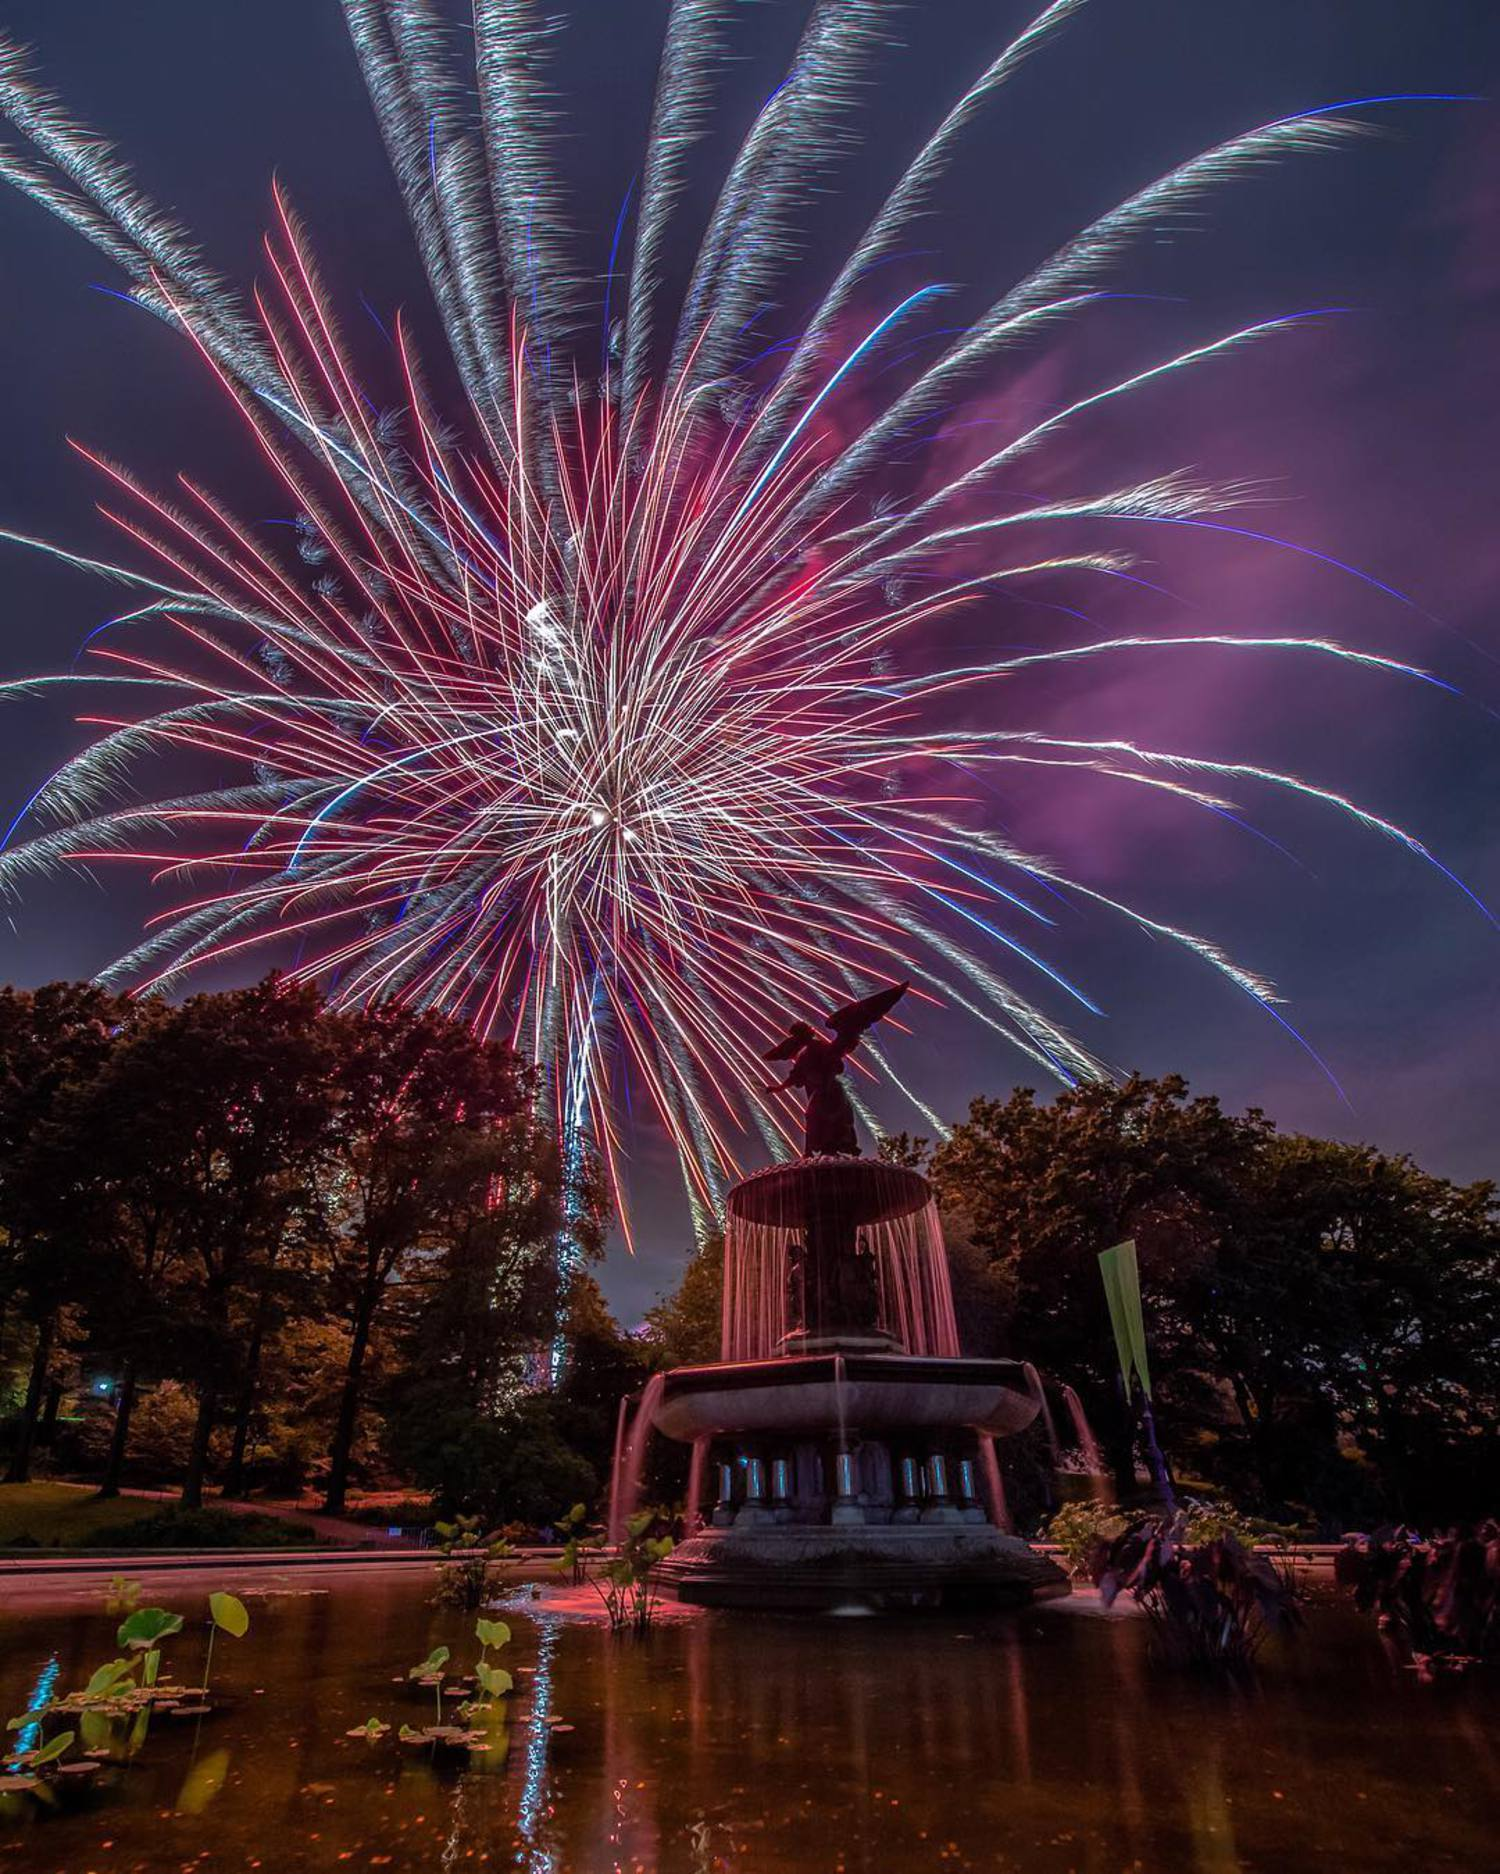 Fireworks in Central Park tonight with @jeffrey_doherty @gigi.nyc @hindoben @nyclovesnyc @matthewchimeraphotography and the elusive @b911bphoto who I finally met after more than a year of near misses. Have a good night all! ✨✌🏼️👨🏻✨ Camera: Nikon D7200 Lens: Nikkor 10-24 @ 10mm ISO: 250 Aperture: F8 Exposure: 5s NEF (RAW) format Post-processing/Edit: Lightroom, PS Mobile ✨🌆✨🏙✨🌃✨🎆✨ #fireworks #centralpark  #skyline #moodygrams #moody  #morandoemnovayork #picturesofnewyork  #abc7ny #ny #nyc #night #nikon #nbc4ny #NikonLove #nightshooters #NikonNoFilter #NewYork #newyorkcity #newyork_instagram #nycdotgram